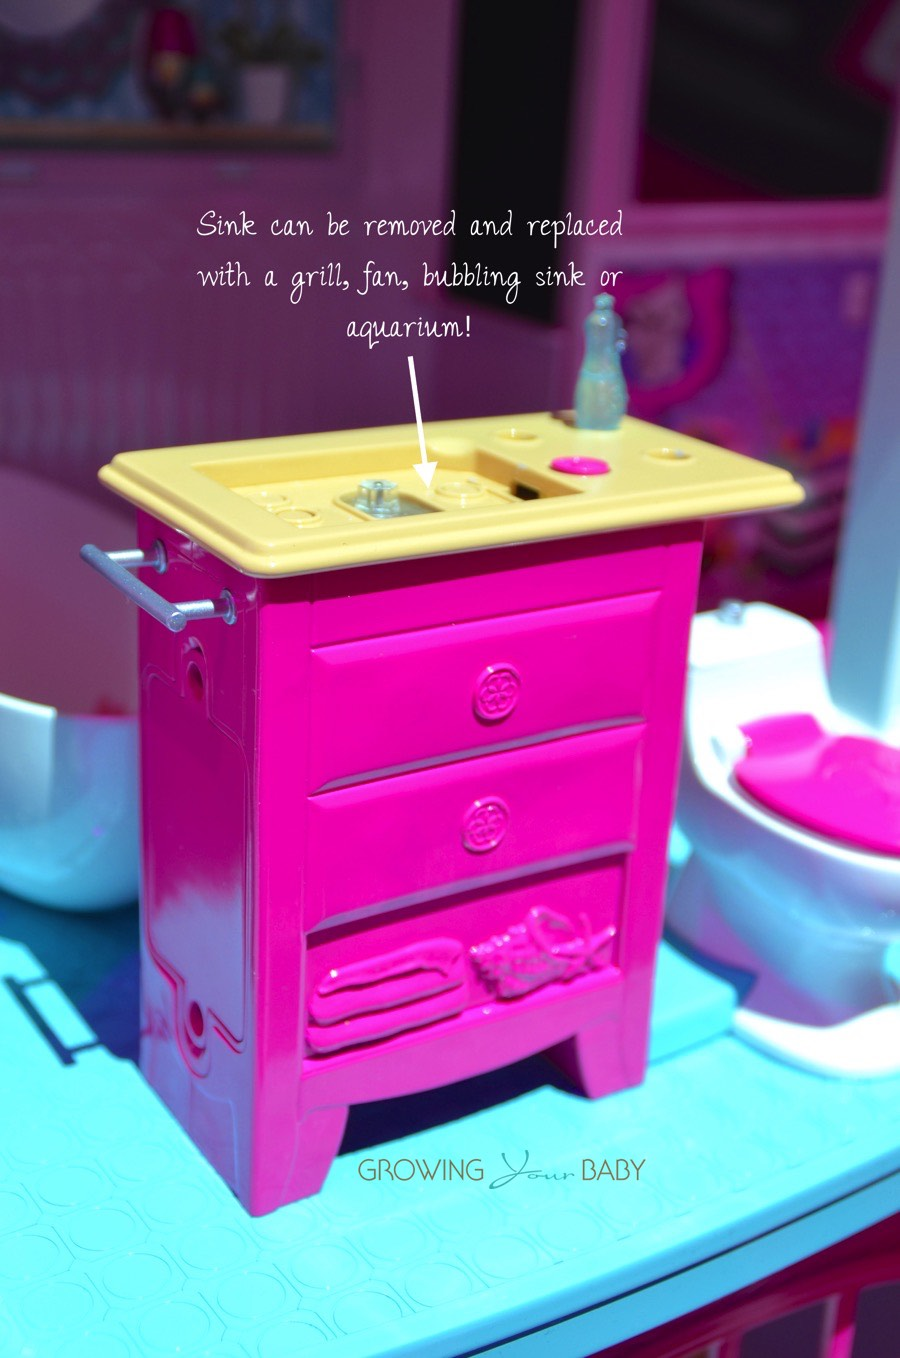 Barbie 2015 Dream house - bathroom vanity without sink - Growing Your Baby